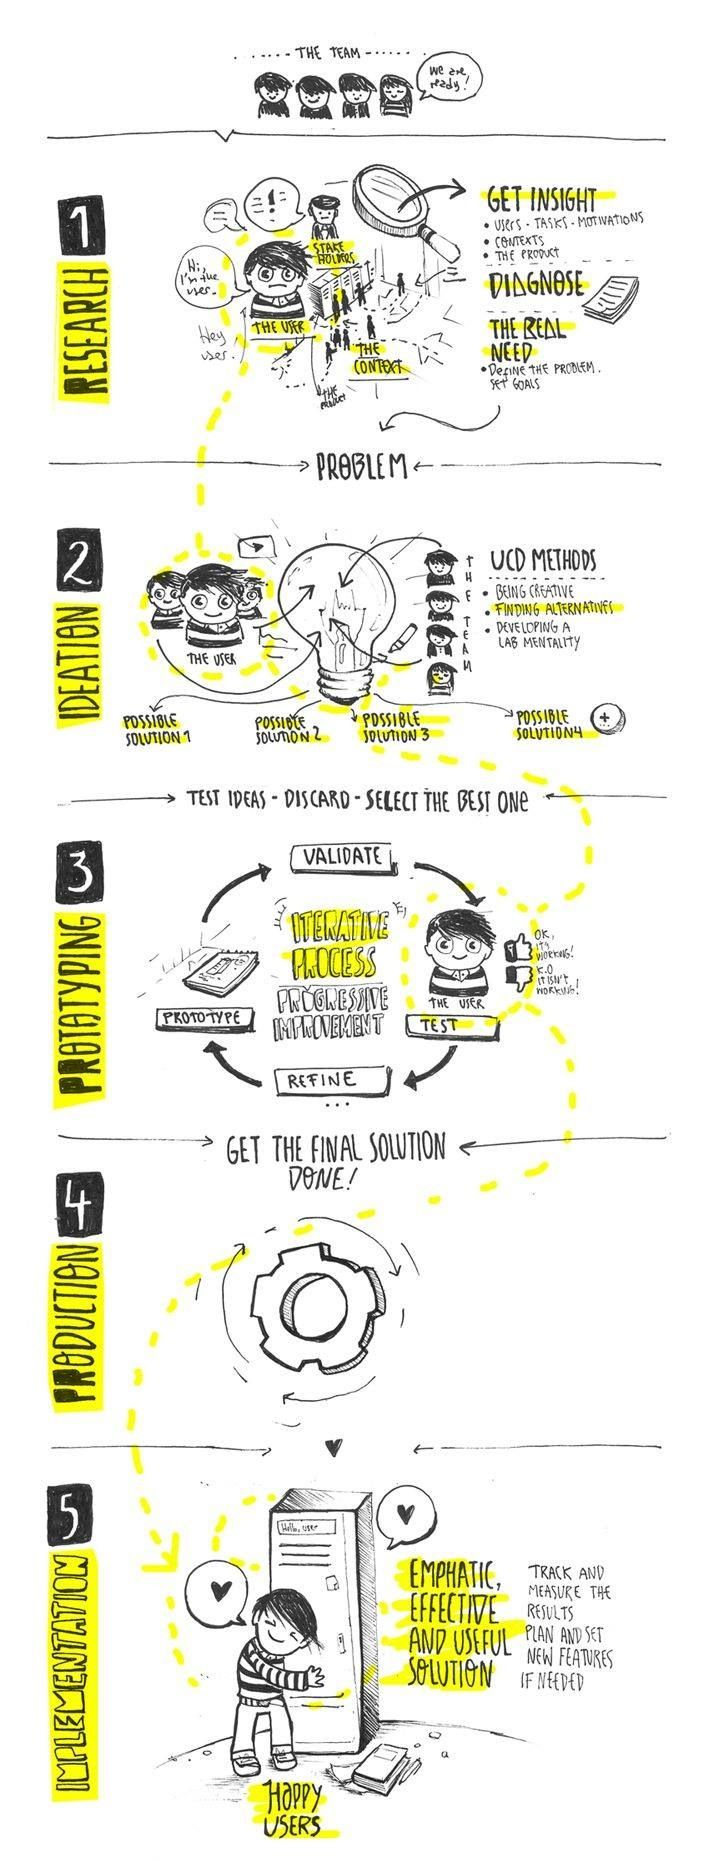 Visual thinking - Happy users. If you like UX, design, or design thinking, check…